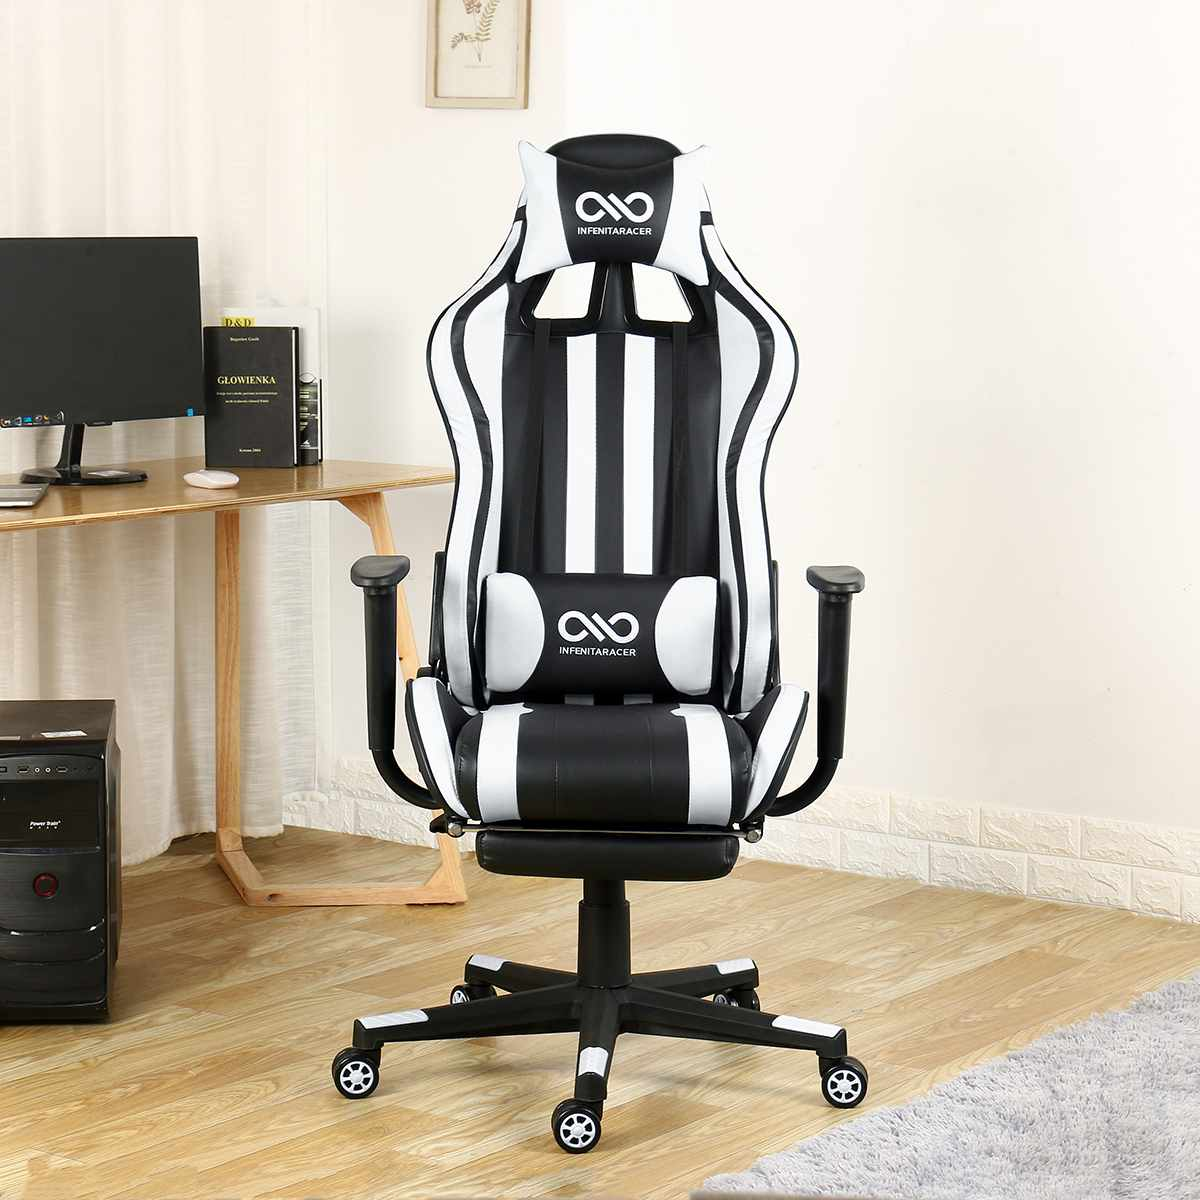 H3a84991c274744ecb8cf61b087006b2br - Office Gaming Chair PVC Household Armchair Lift and Swivel Function Ergonomic Office Computer Chair Wcg Gamer Chairs